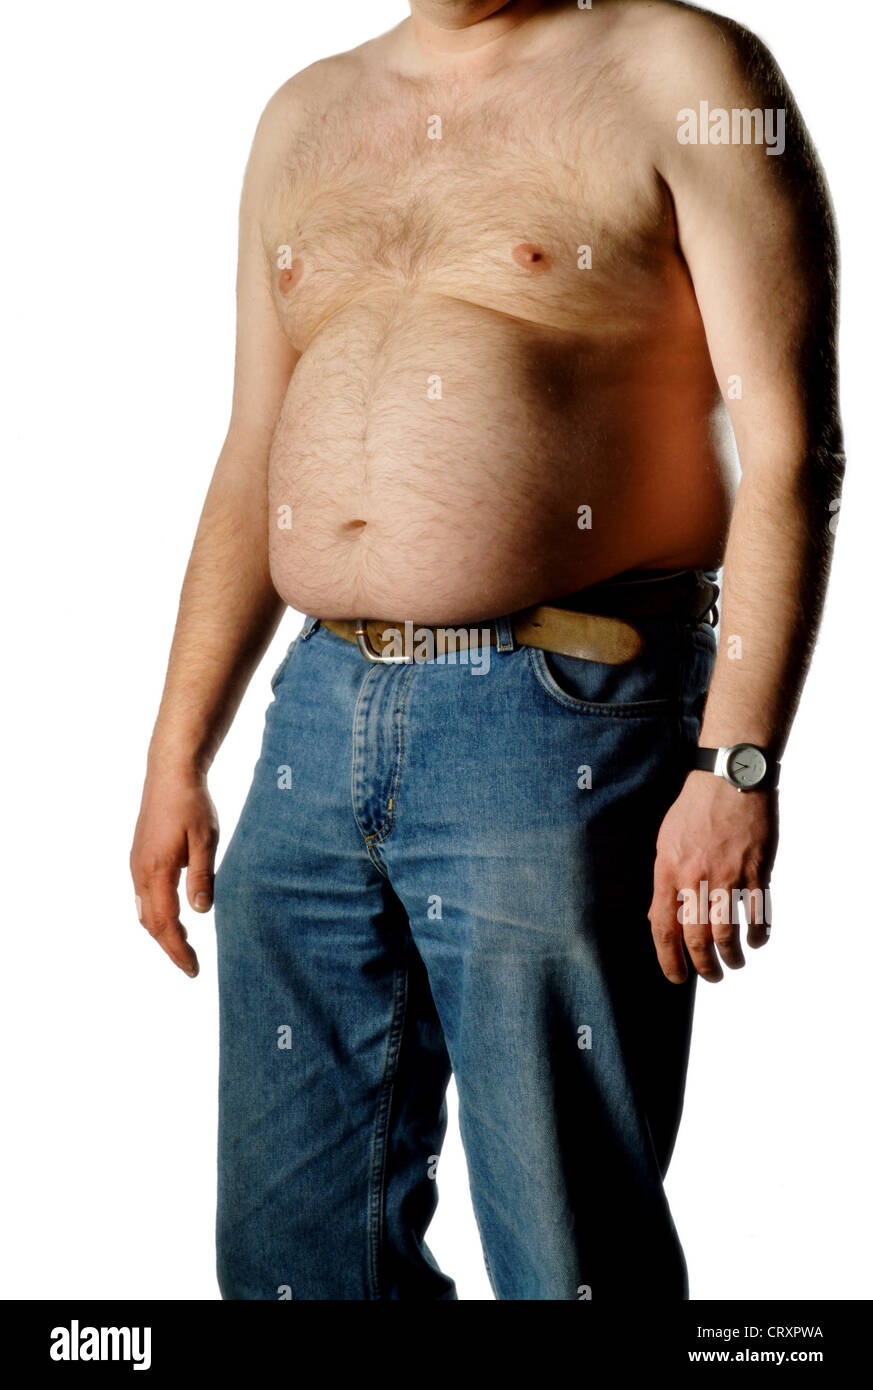 Big Fat Hairy Man 104